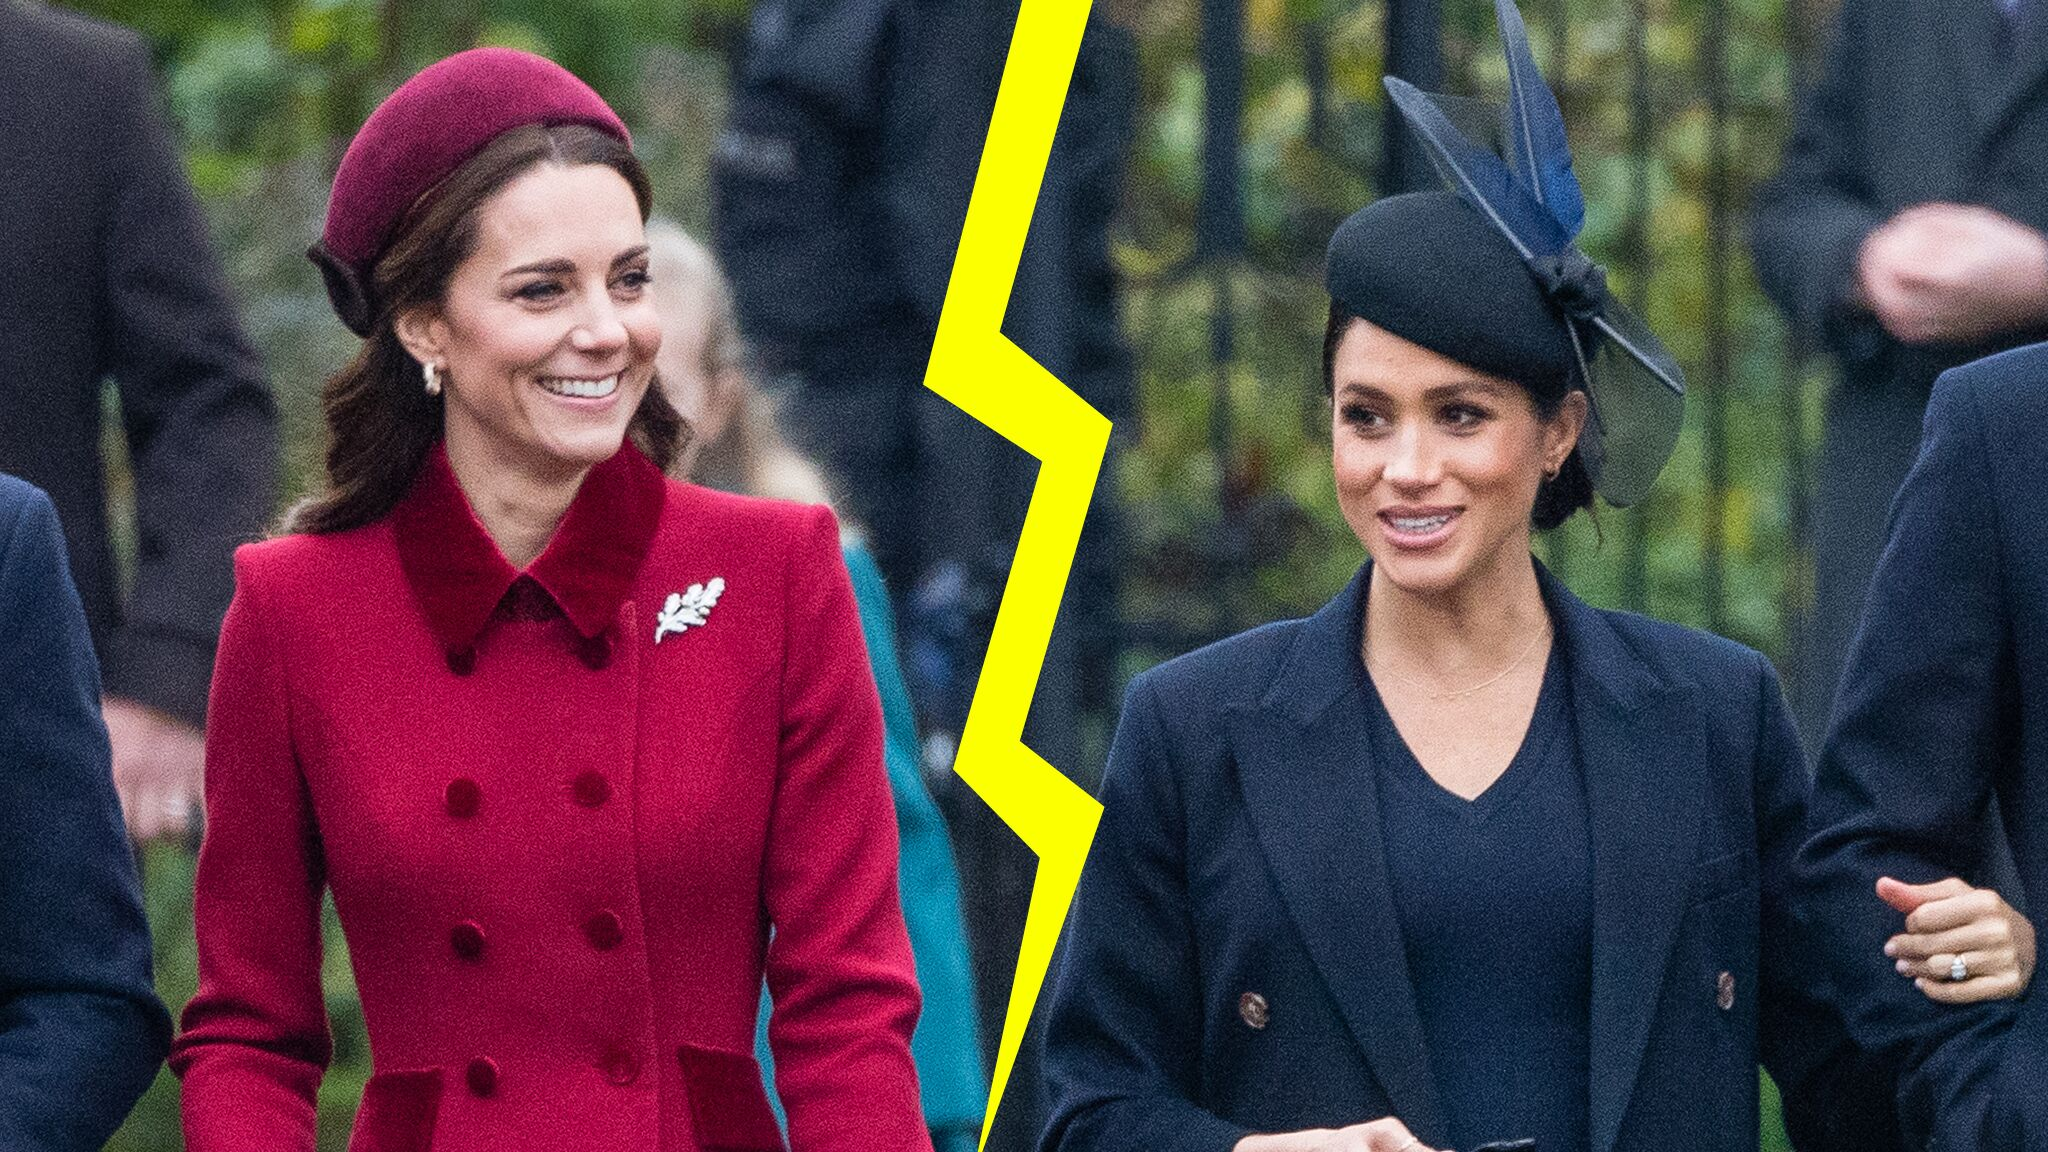 Battle Royale – Qui gagne côté mode entre Kate Middleton et Meghan Markle ?